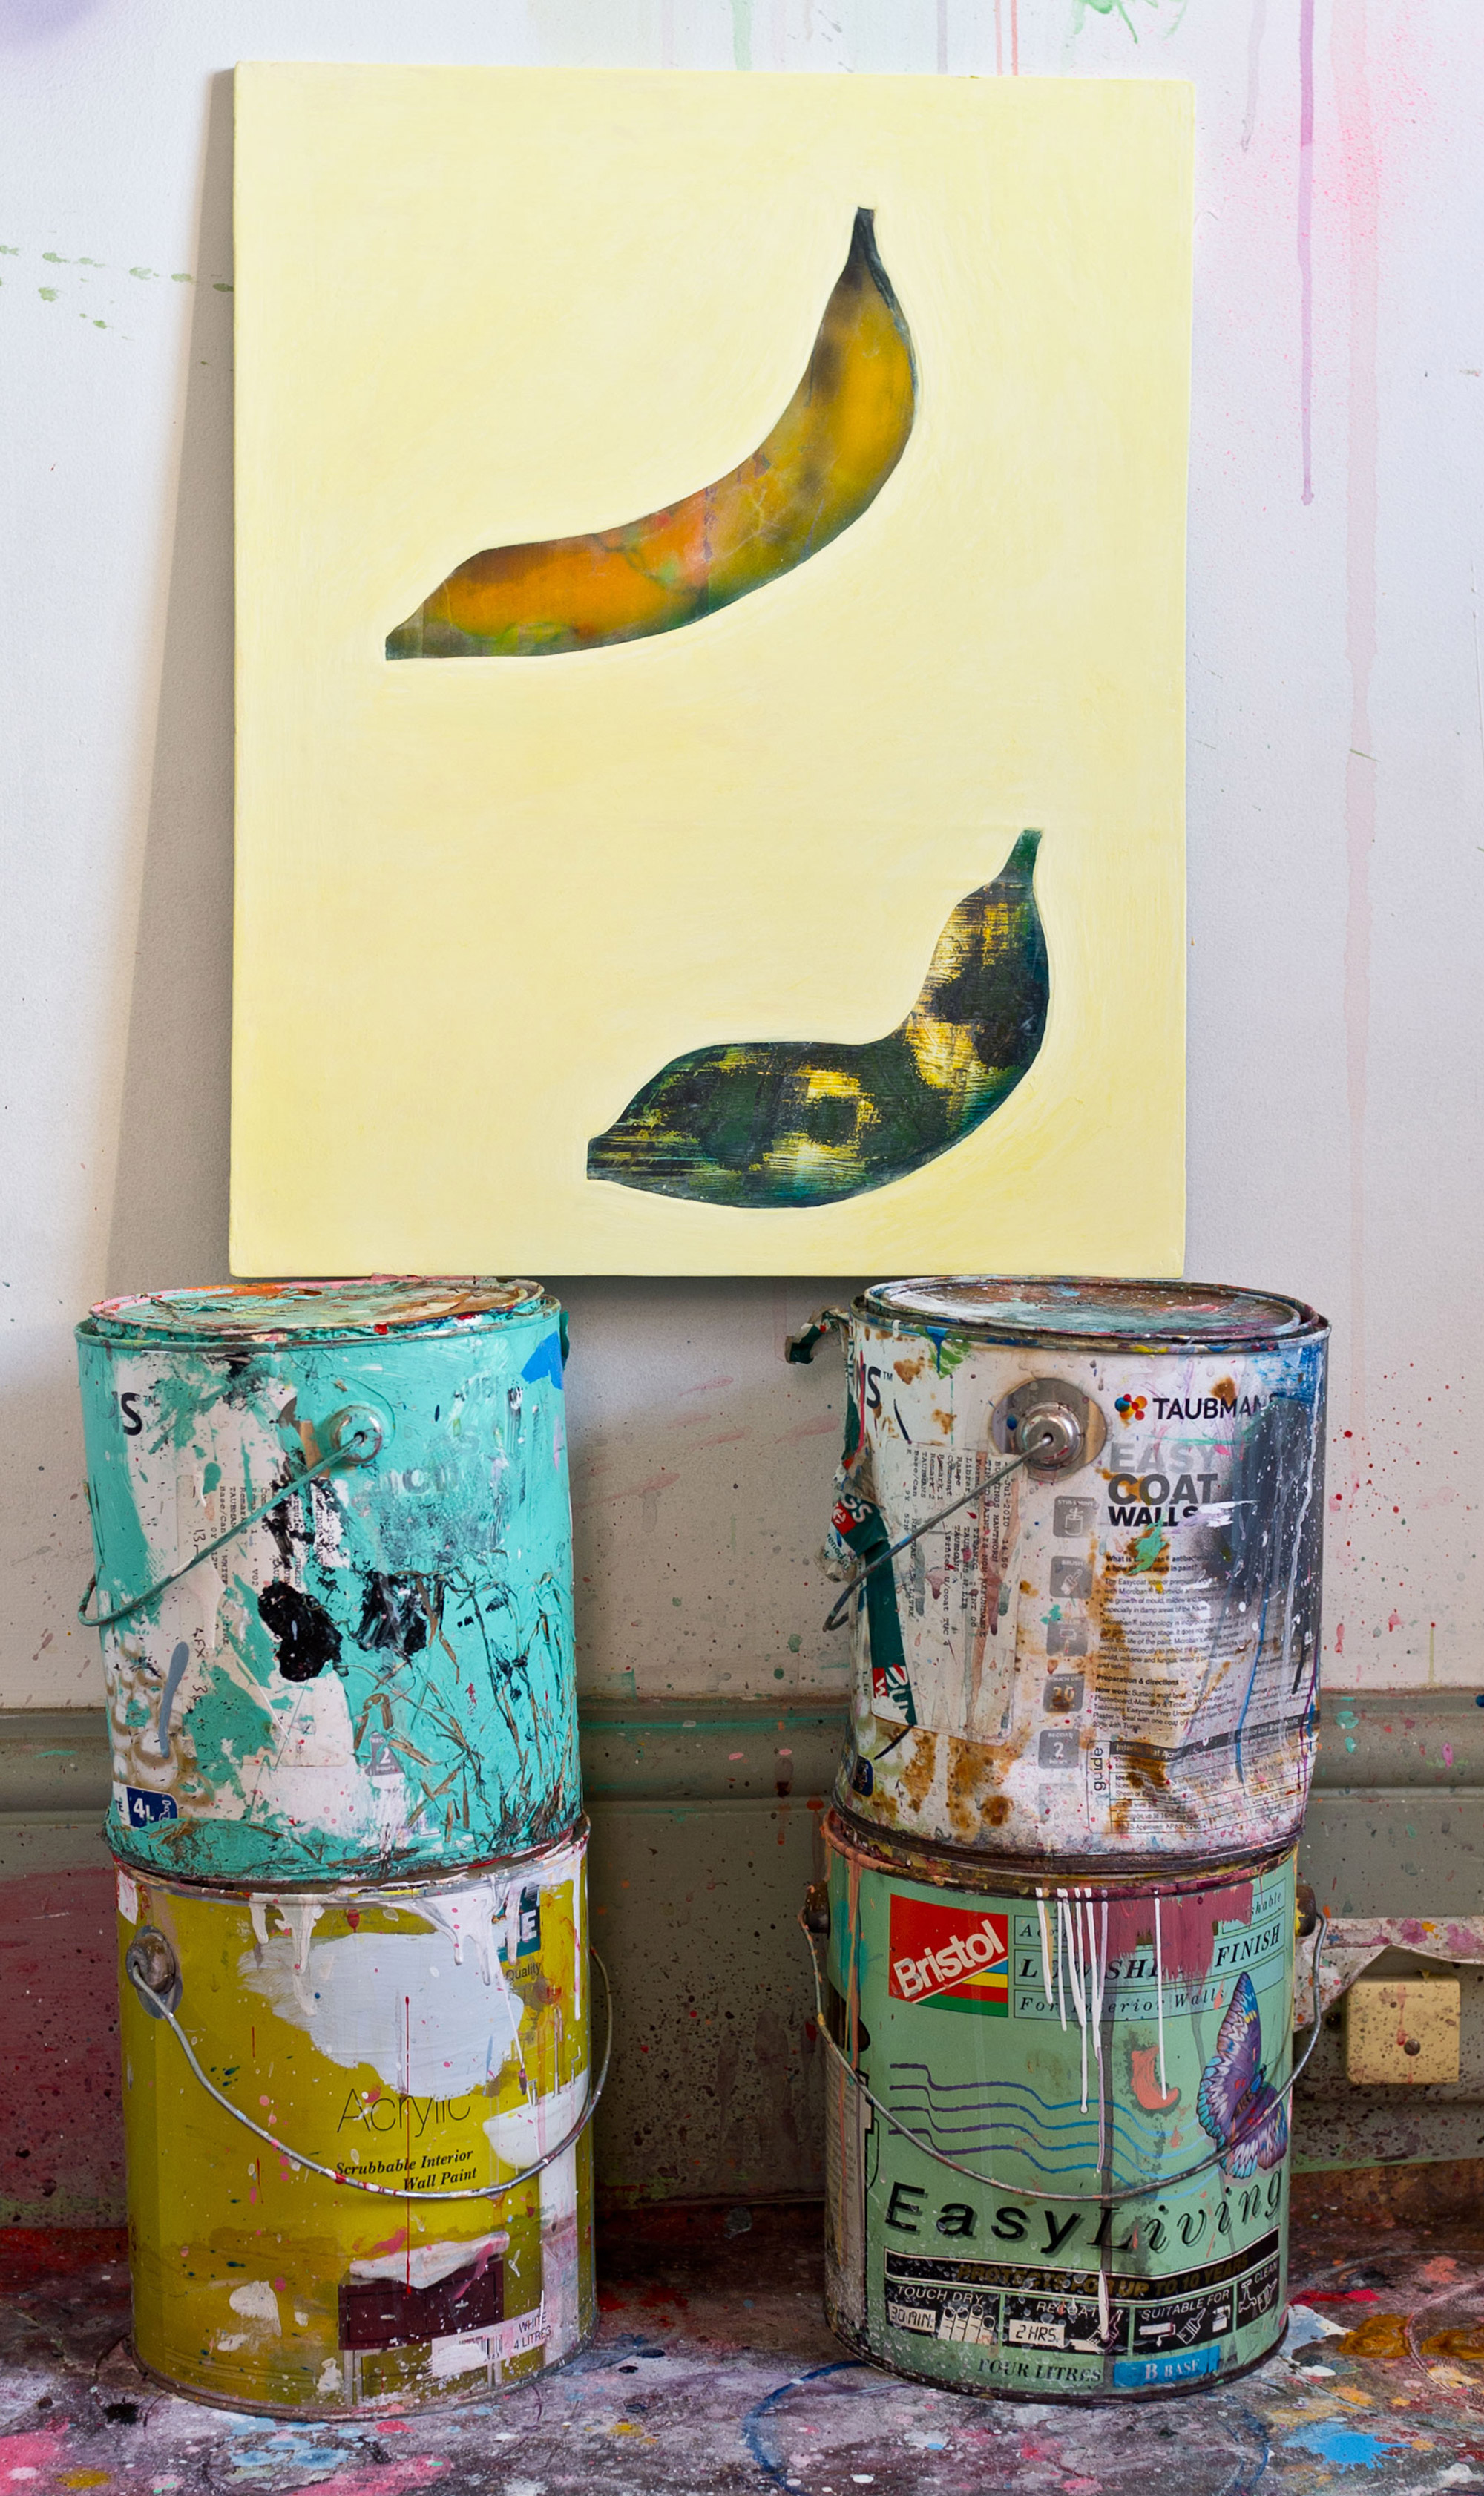 matlokgriffiths_2012_studio_unknownbananas